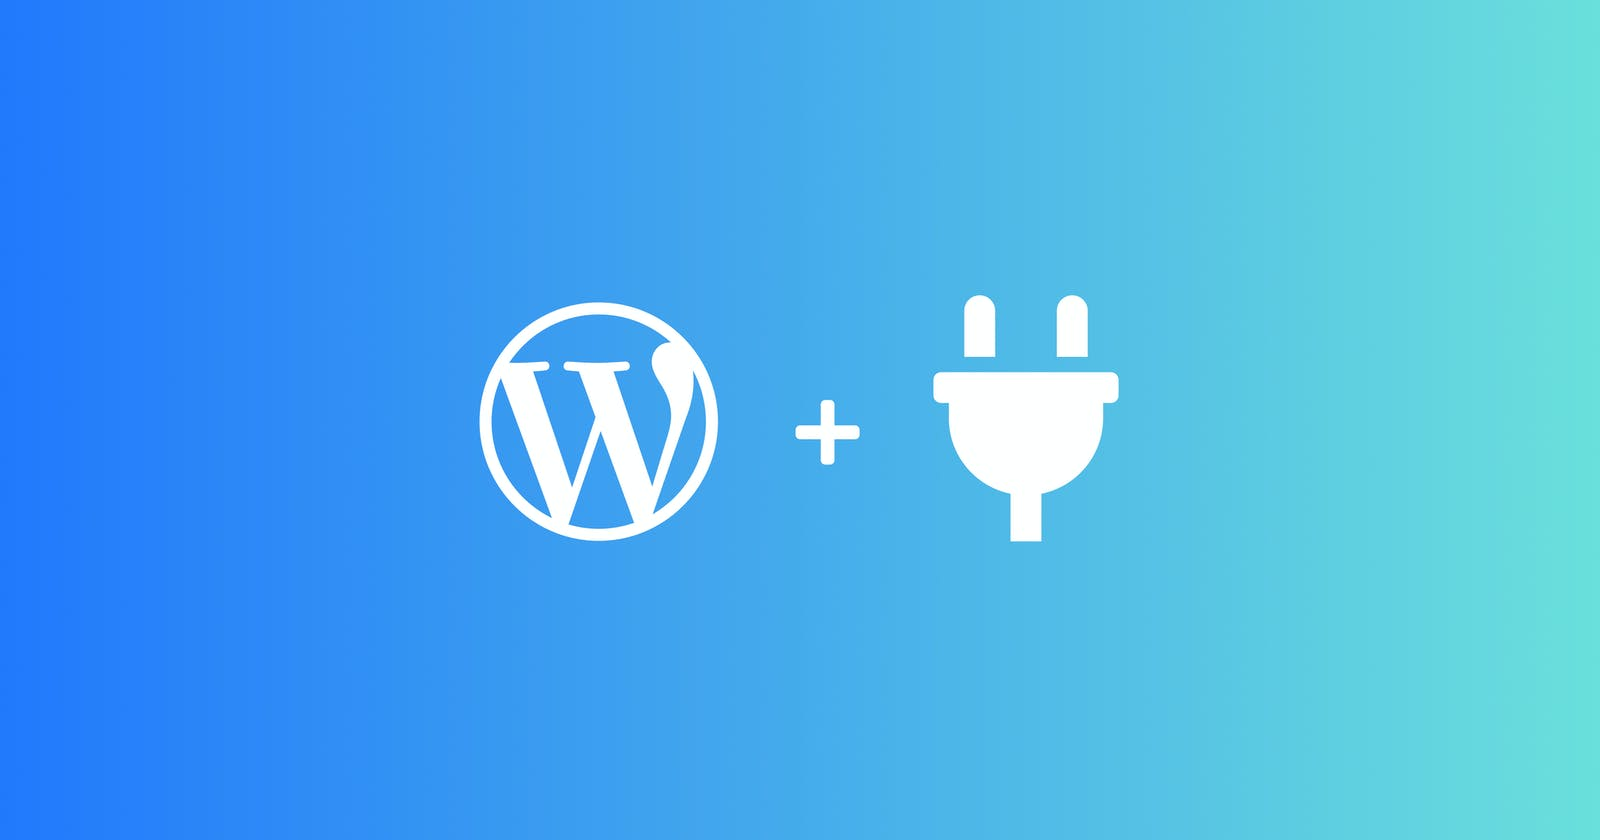 Learn how to create a plugin in less than 2 minutes